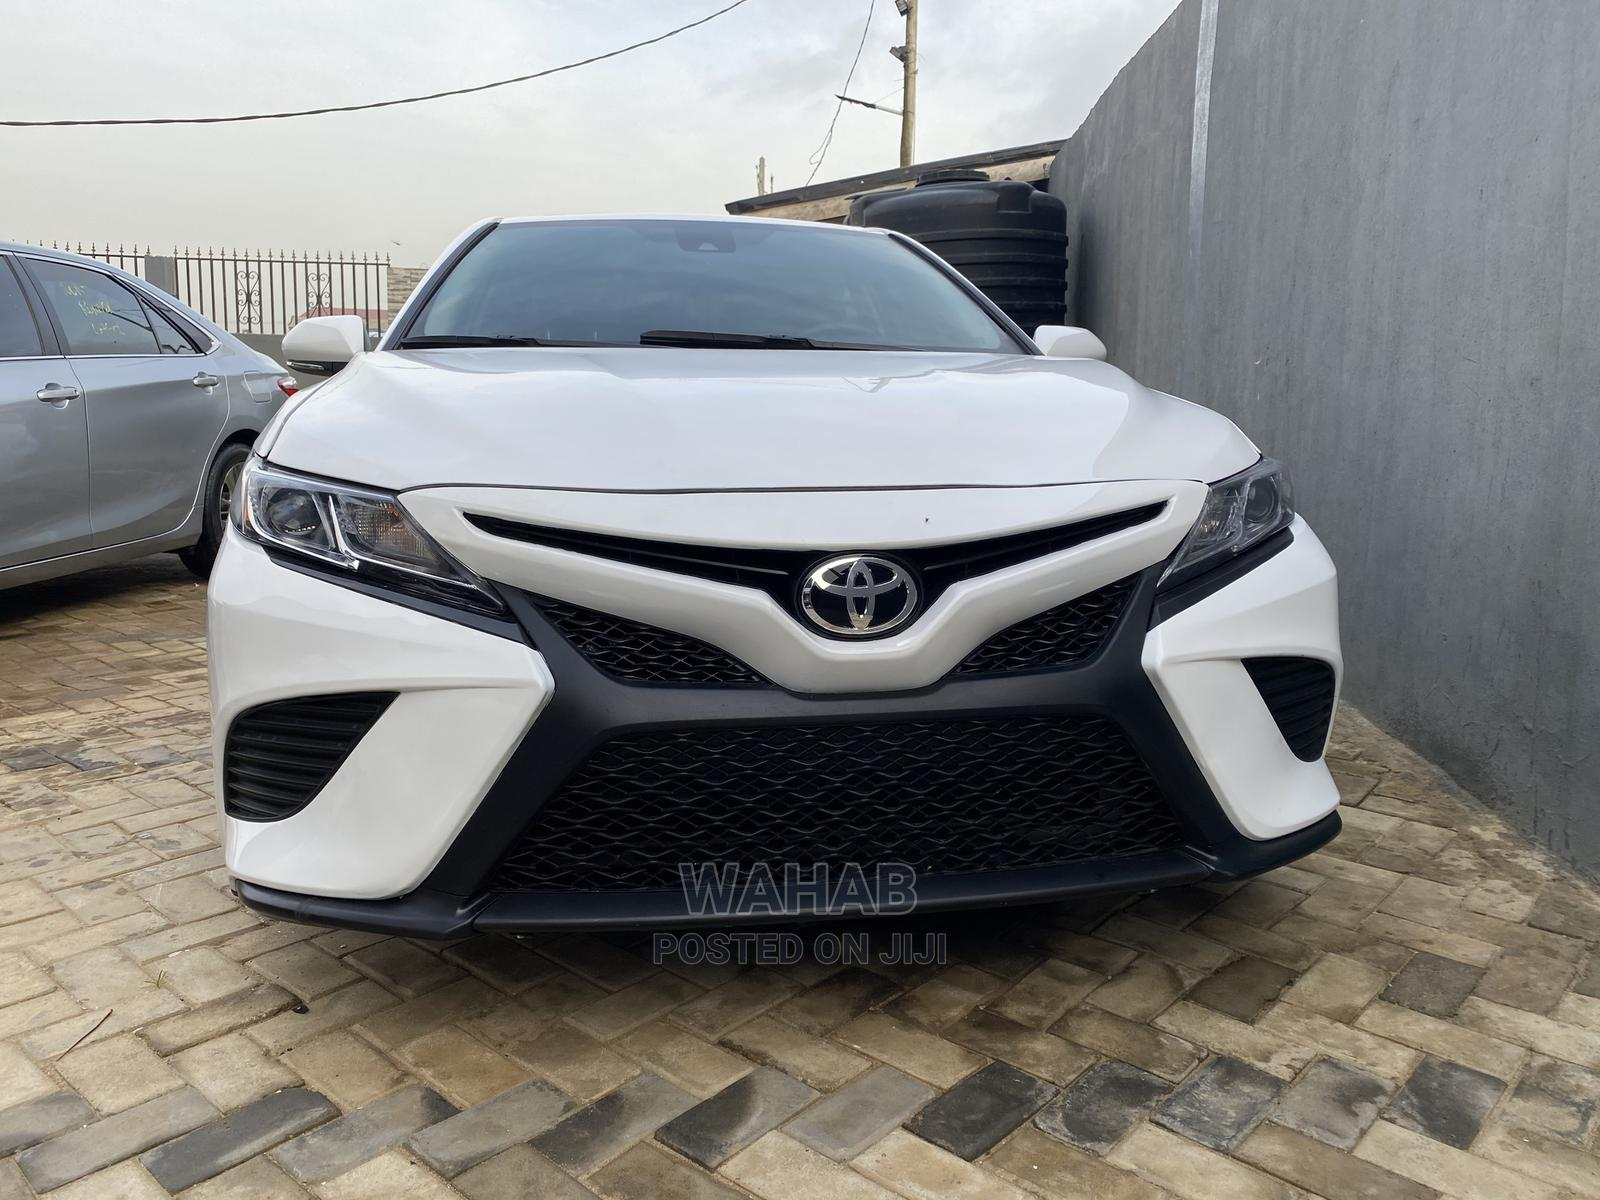 Toyota Camry 2018 SE FWD (2.5L 4cyl 8AM) White